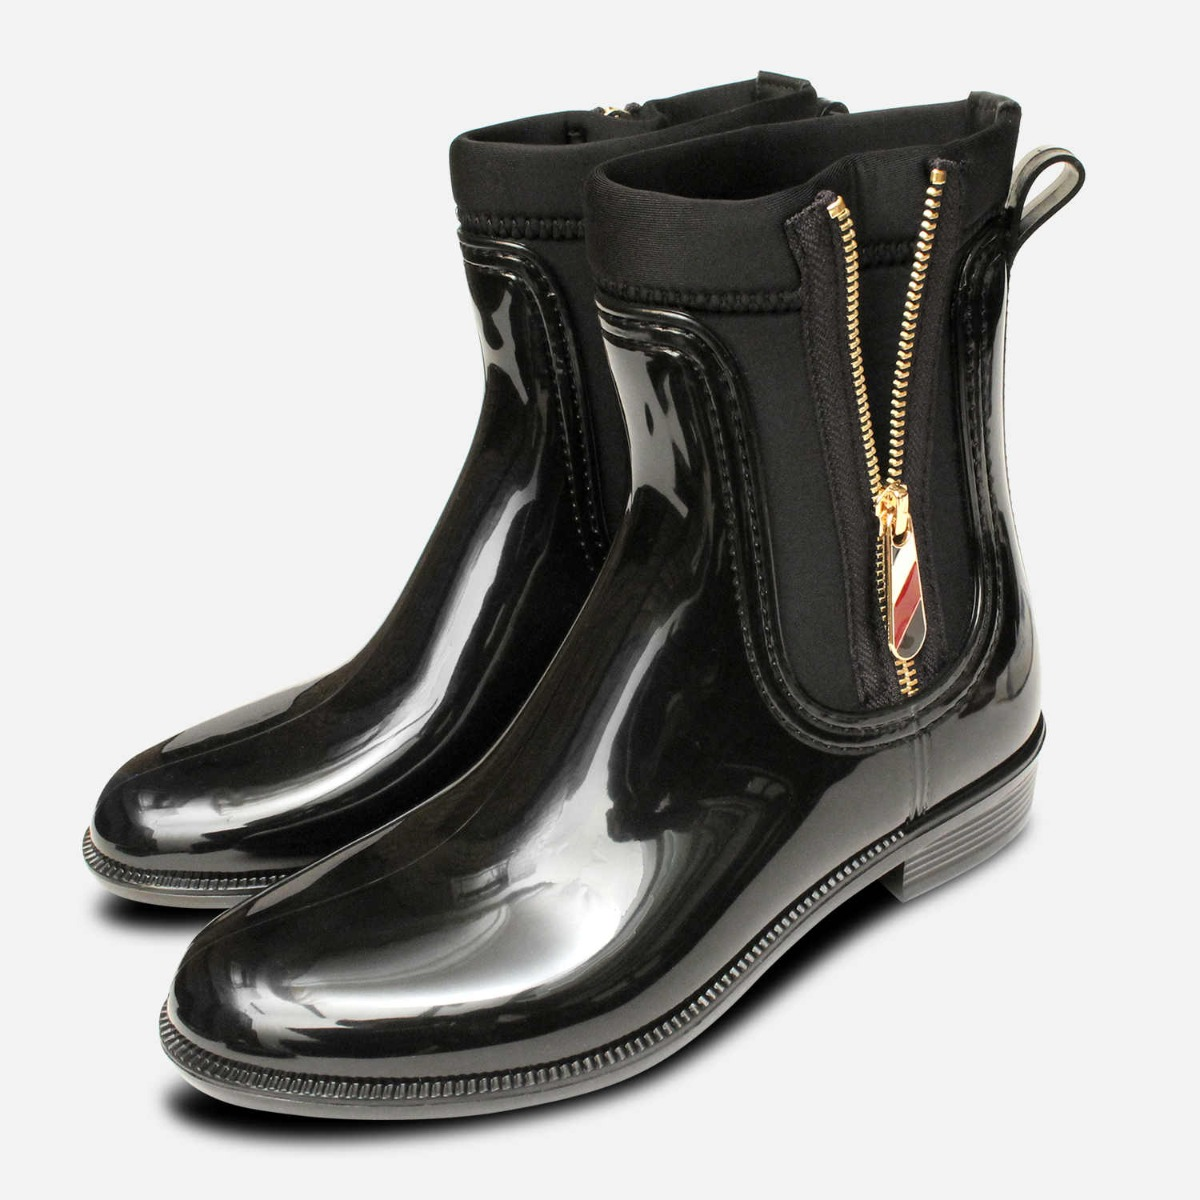 Designer Tommy Hilfiger Gold Zip Wellies in Black